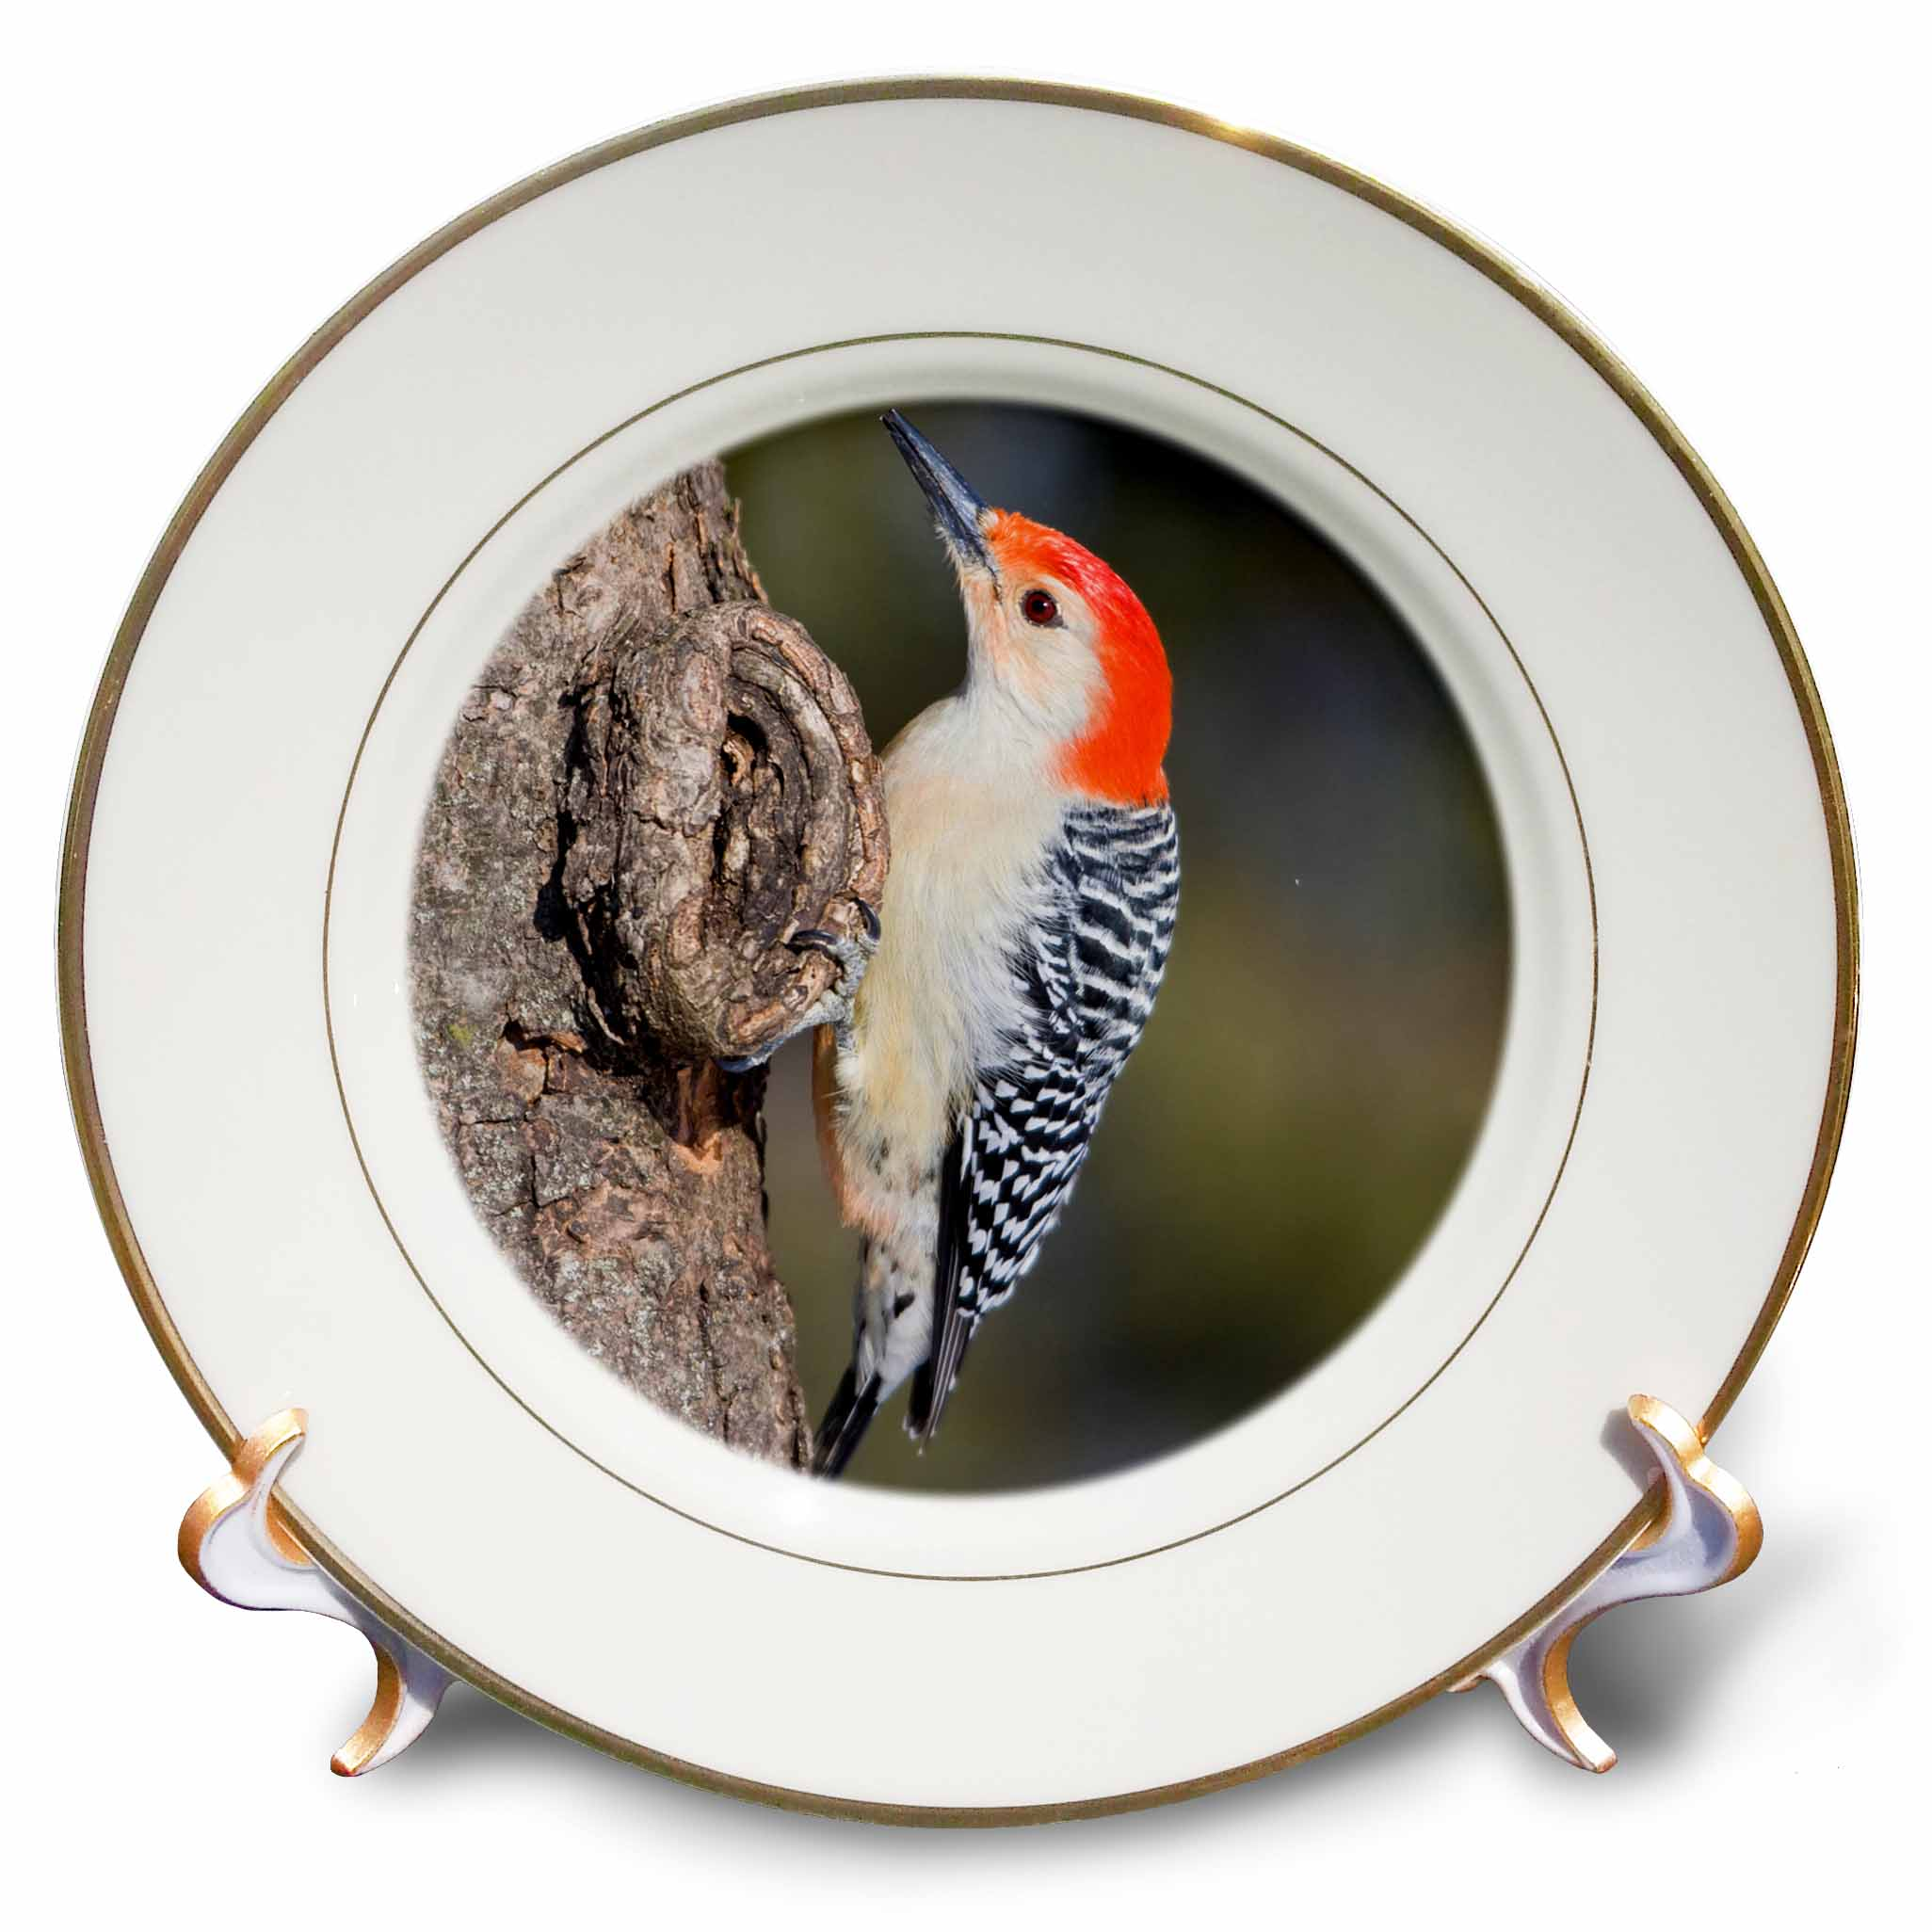 3dRose Marion Co. IL - Red-bellied Woodpecker feeding nestling at nest cavity, Porcelain Plate, 8-inch